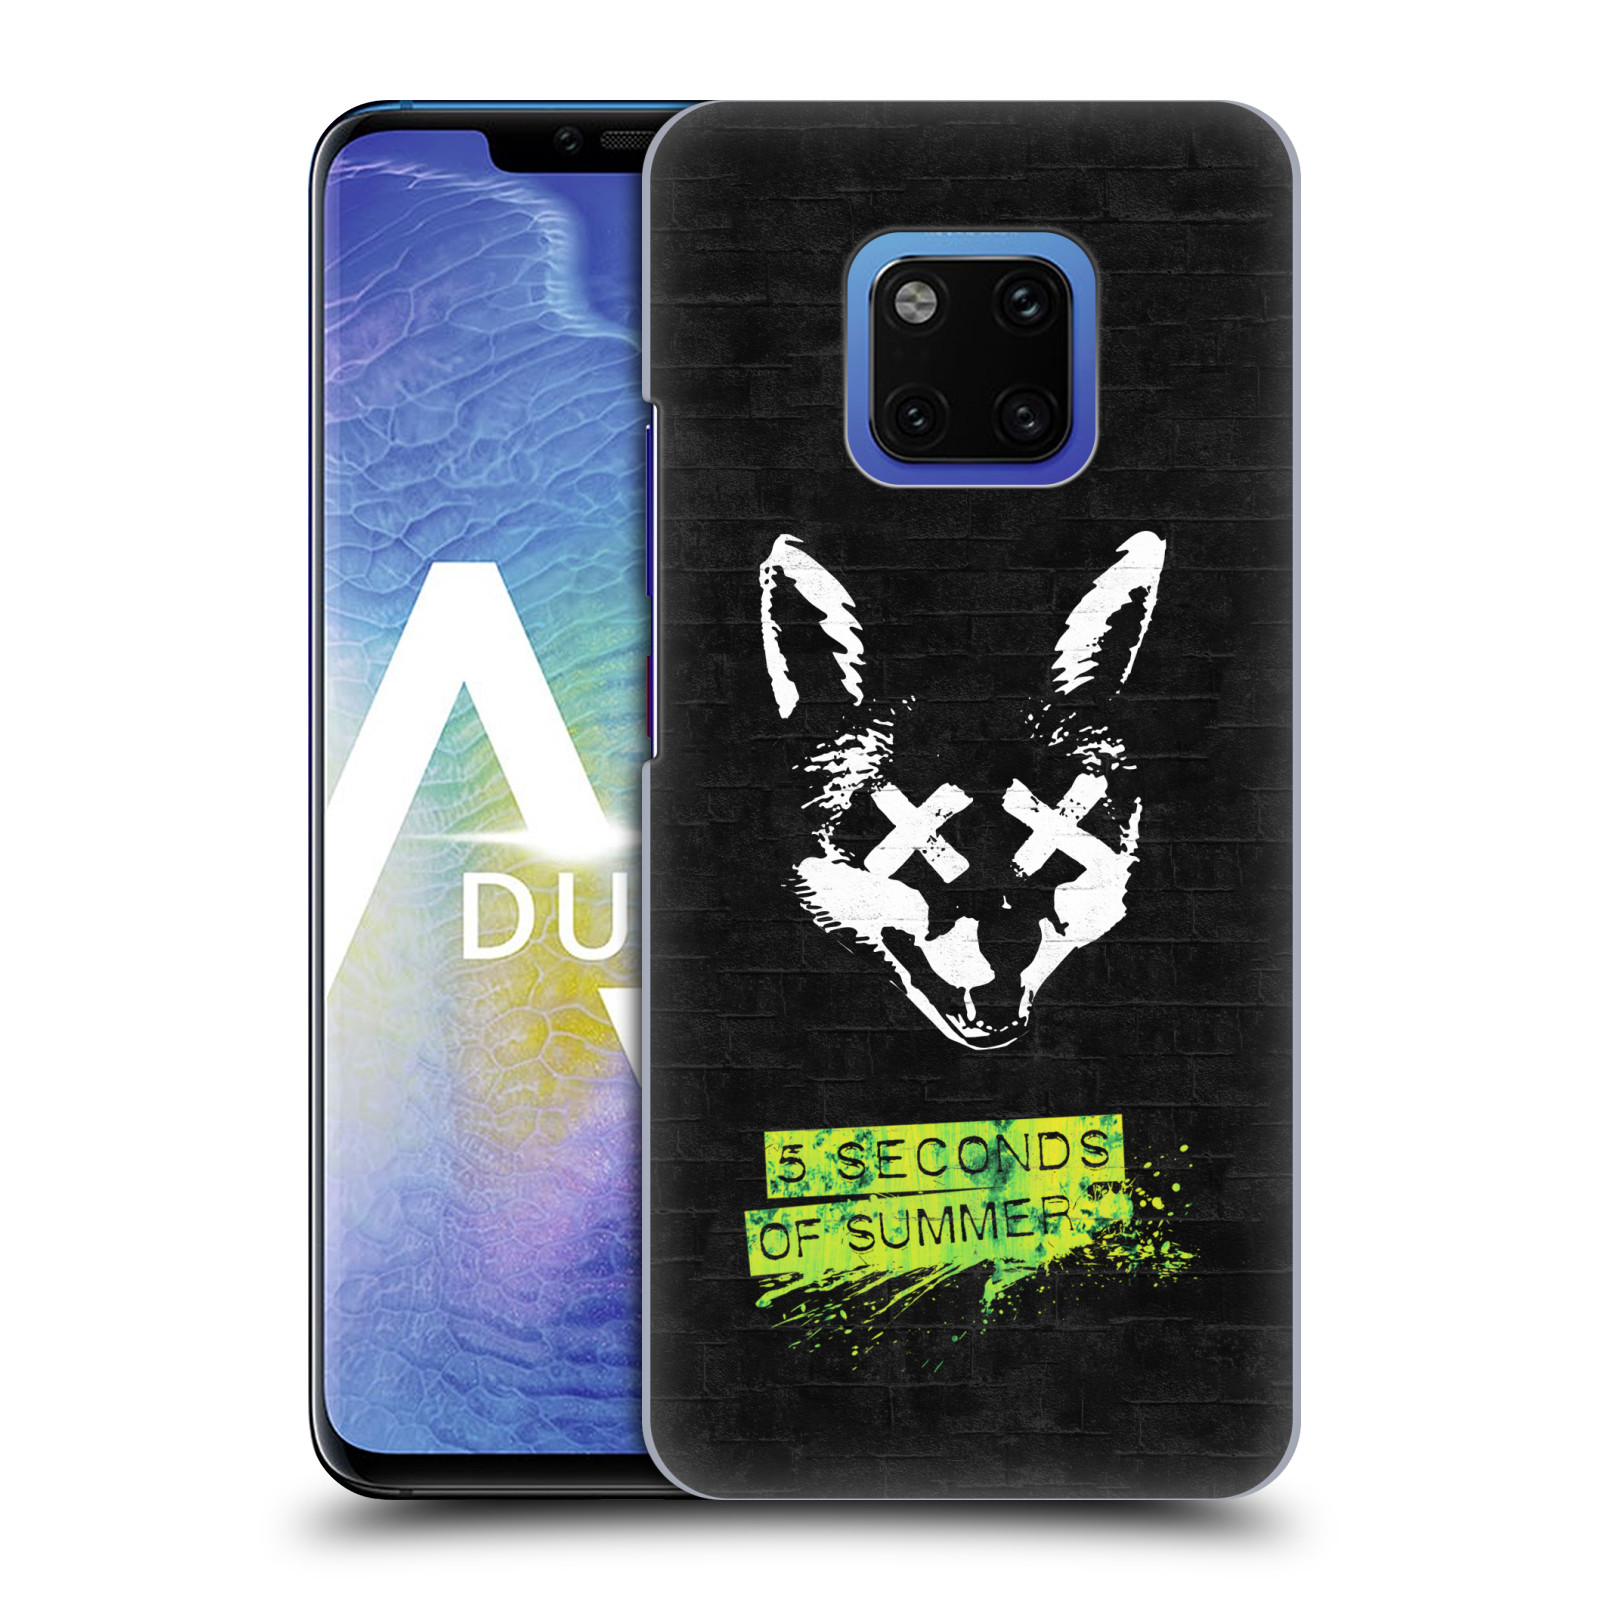 Plastové pouzdro na mobil Huawei Mate 20 Pro - Head Case - 5 Seconds of Summer - Fox